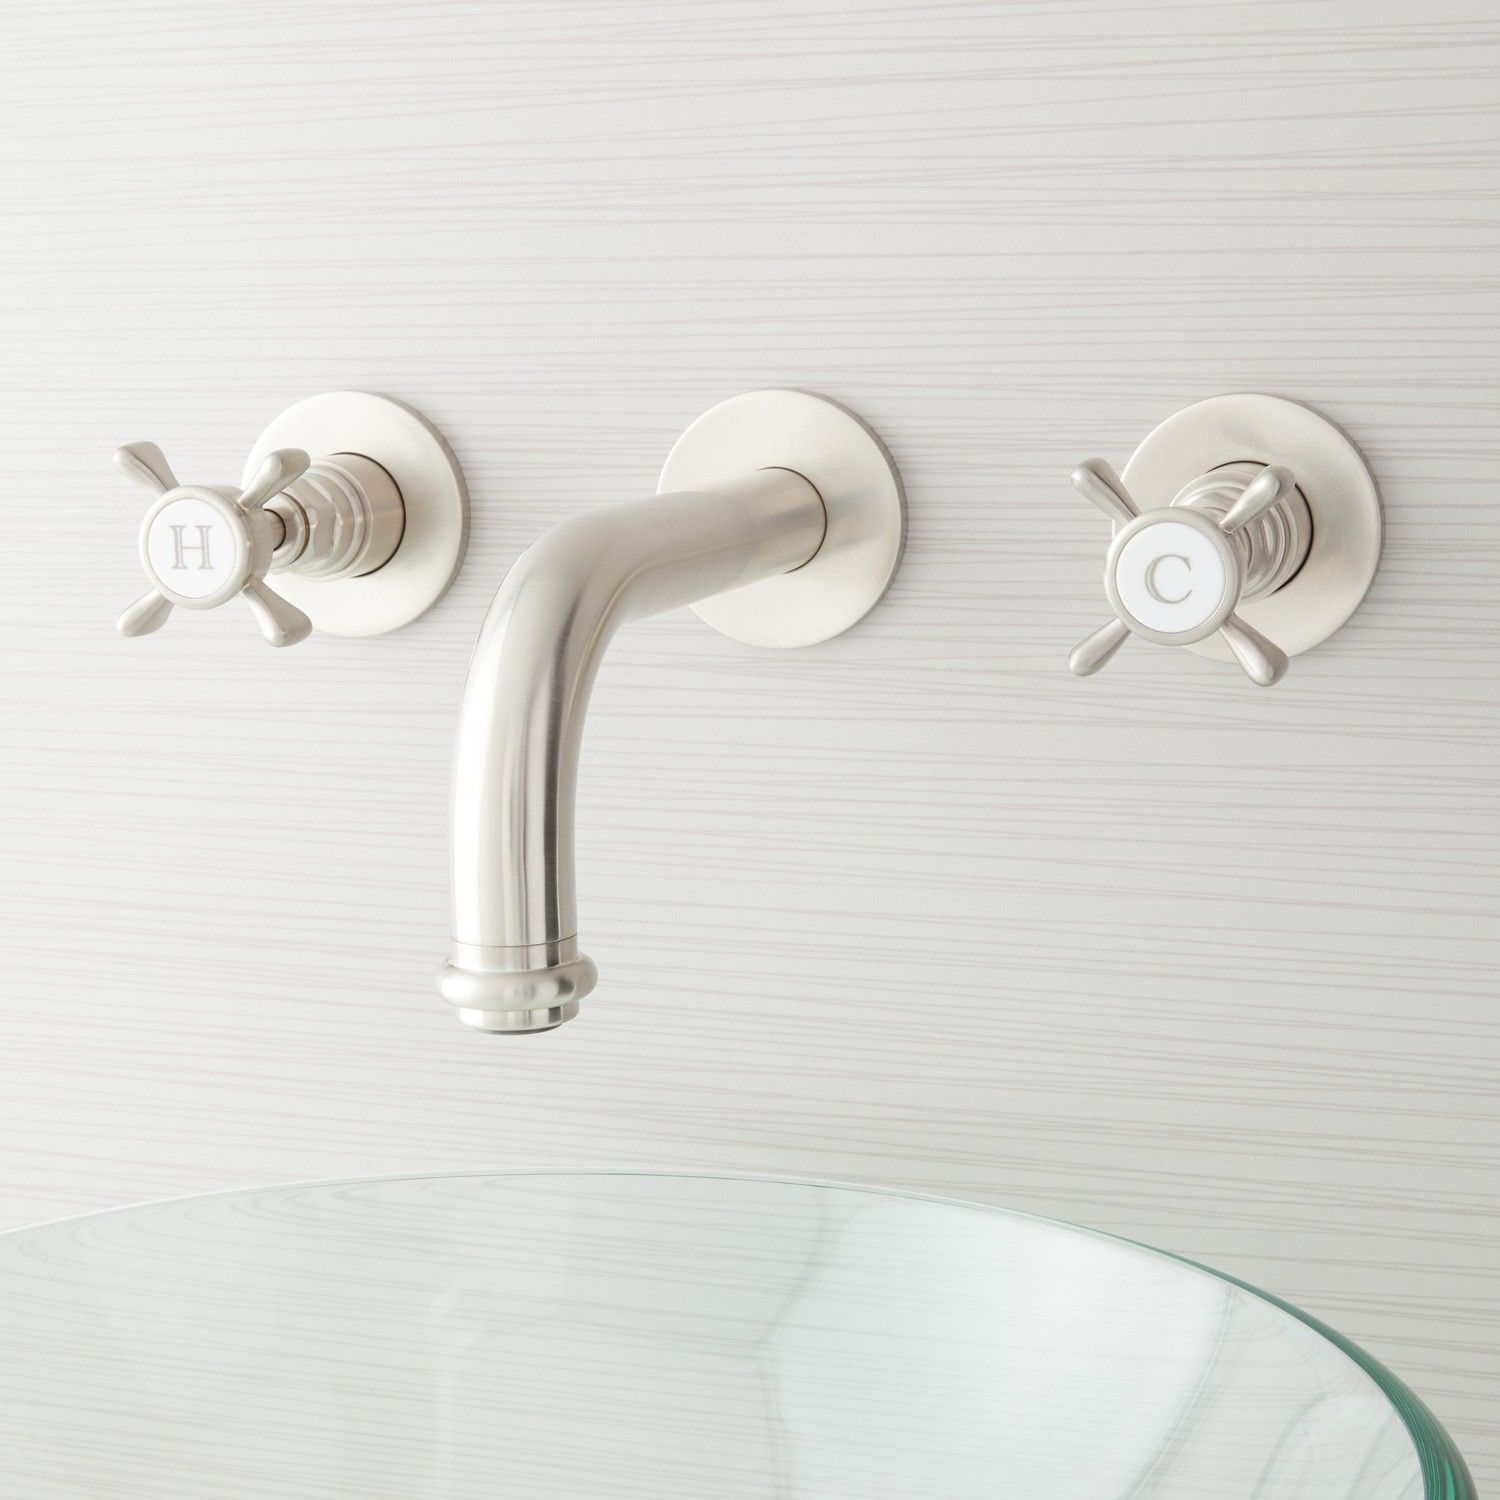 Waterson Wall-Mount Bathroom Faucet | 11 pep isa bath | Pinterest ...